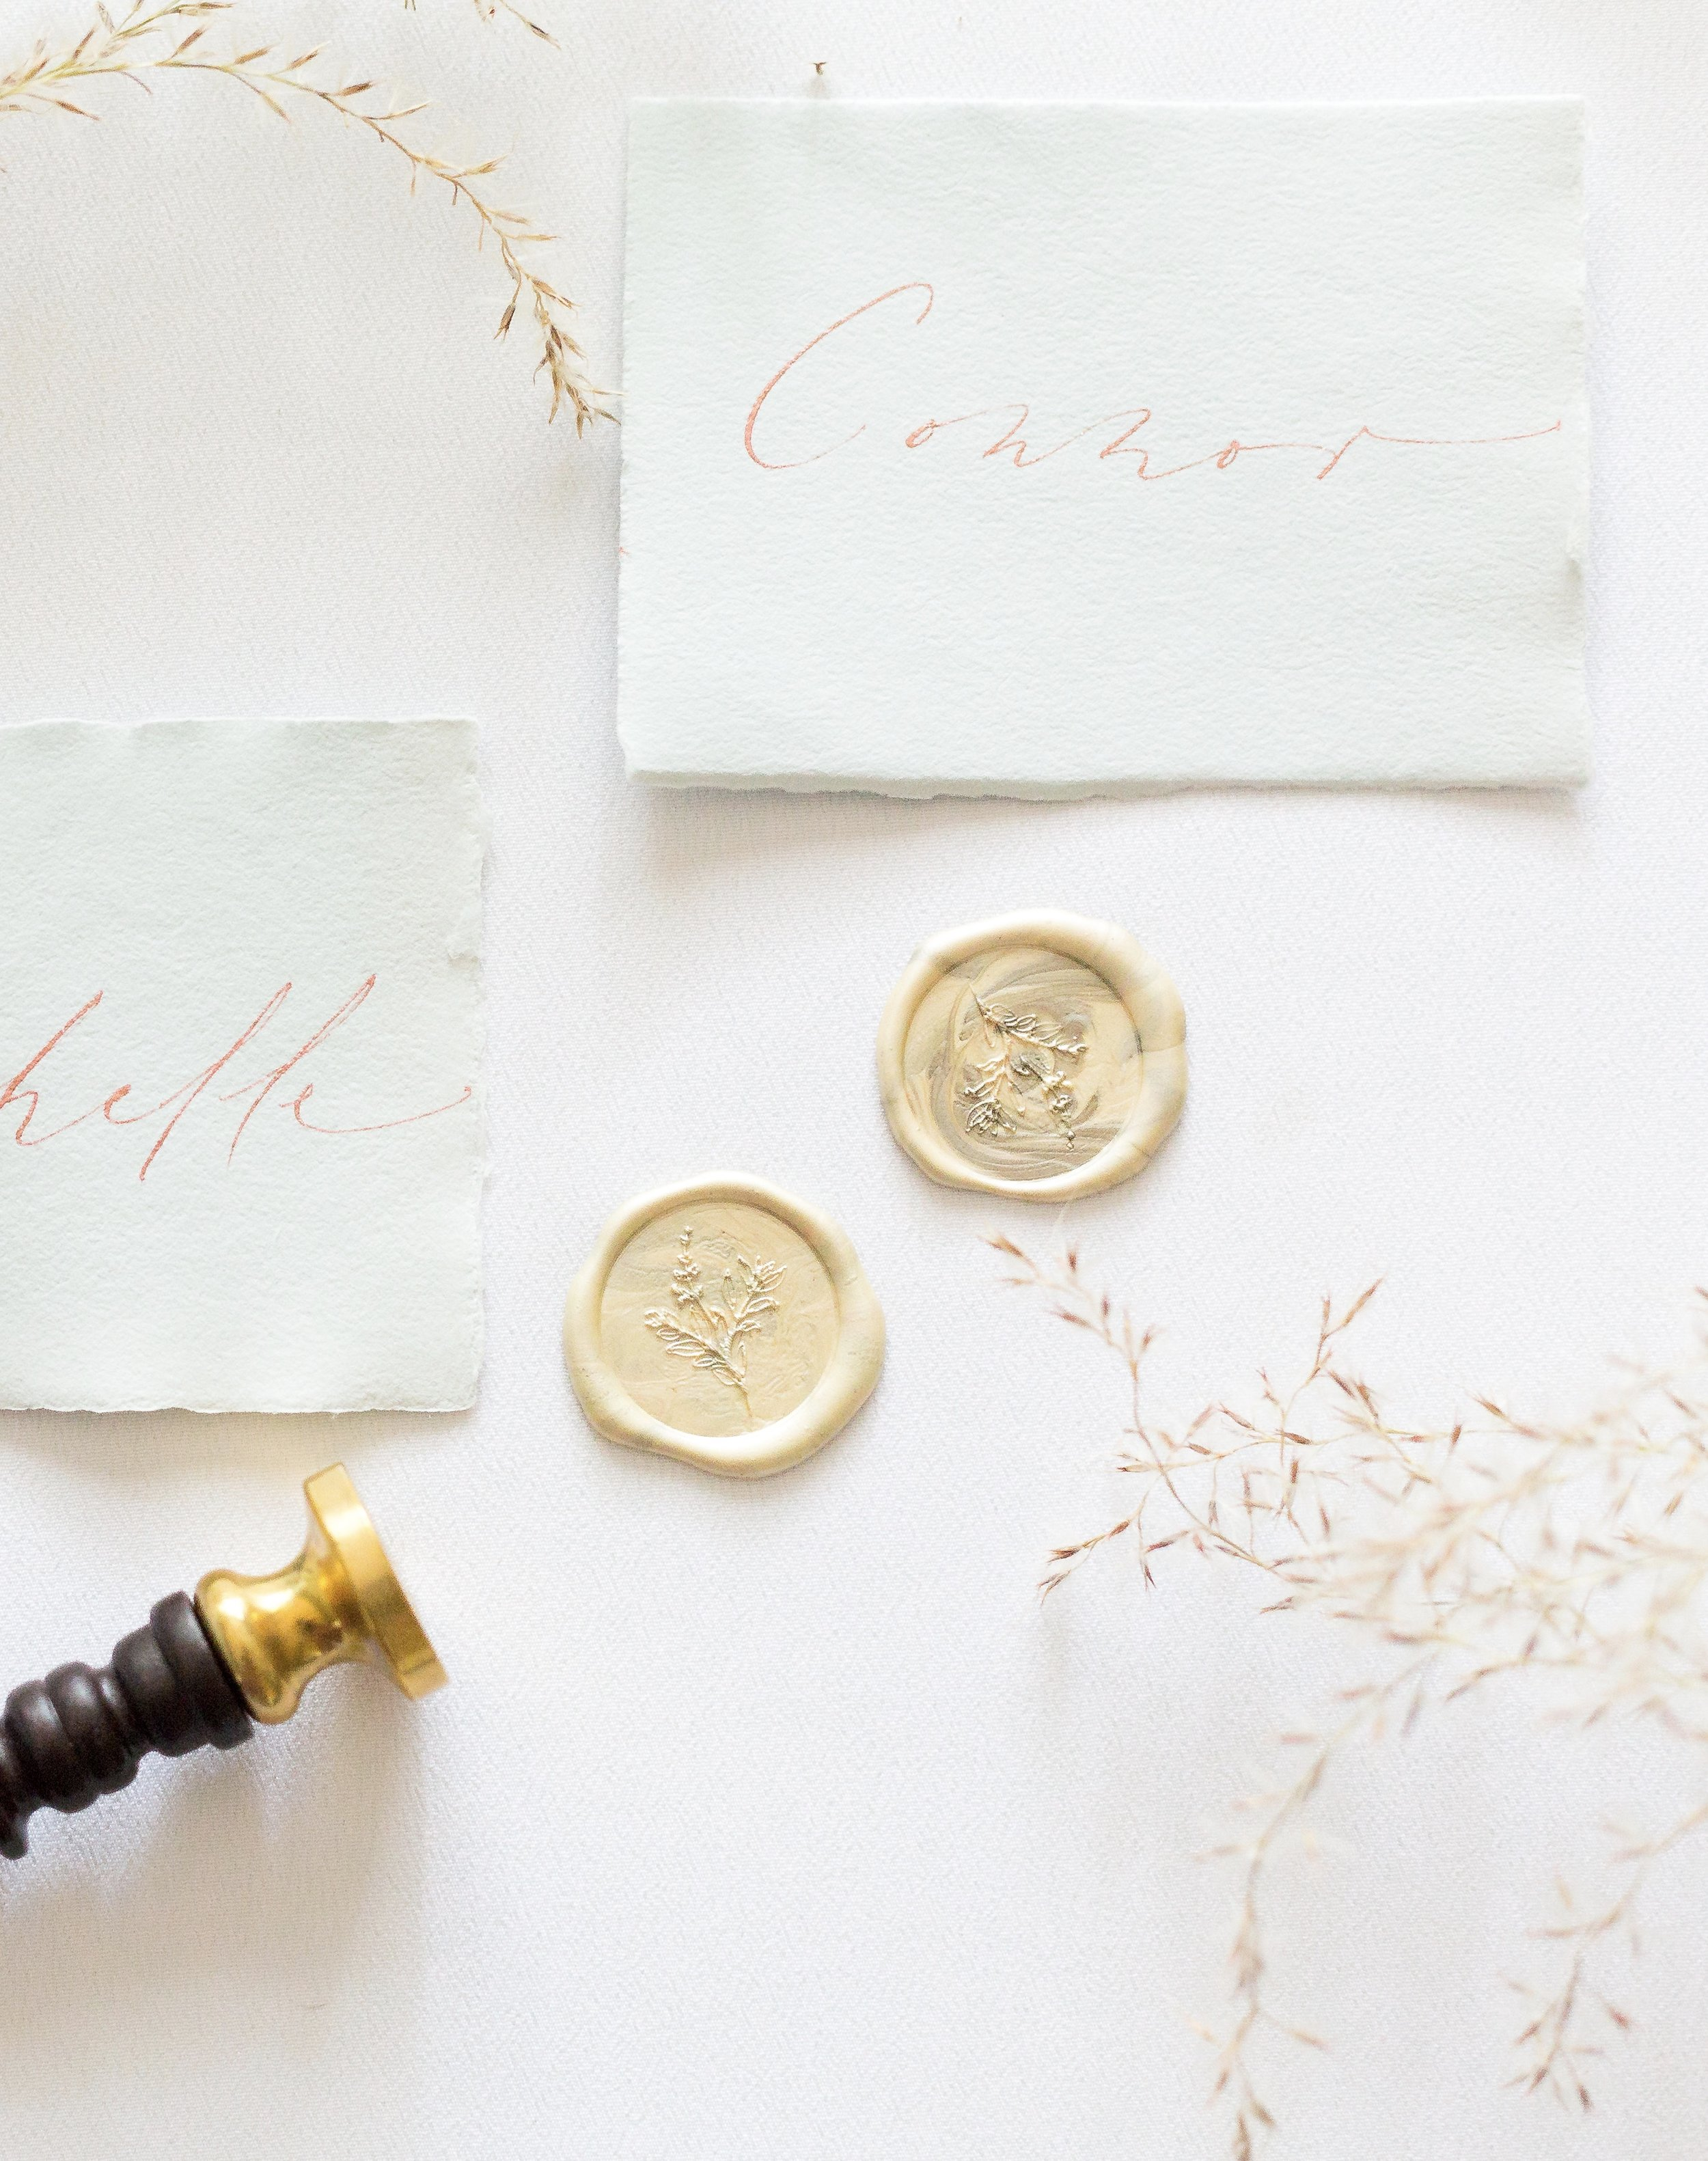 Timeless Romantic Wedding Calligraphy Invitation Suite - Esperanza Atelier Fine Art Calligraphy. Bespoke Wedding envelope Calligraphy Houston weddings -  Houston Calligrapher.